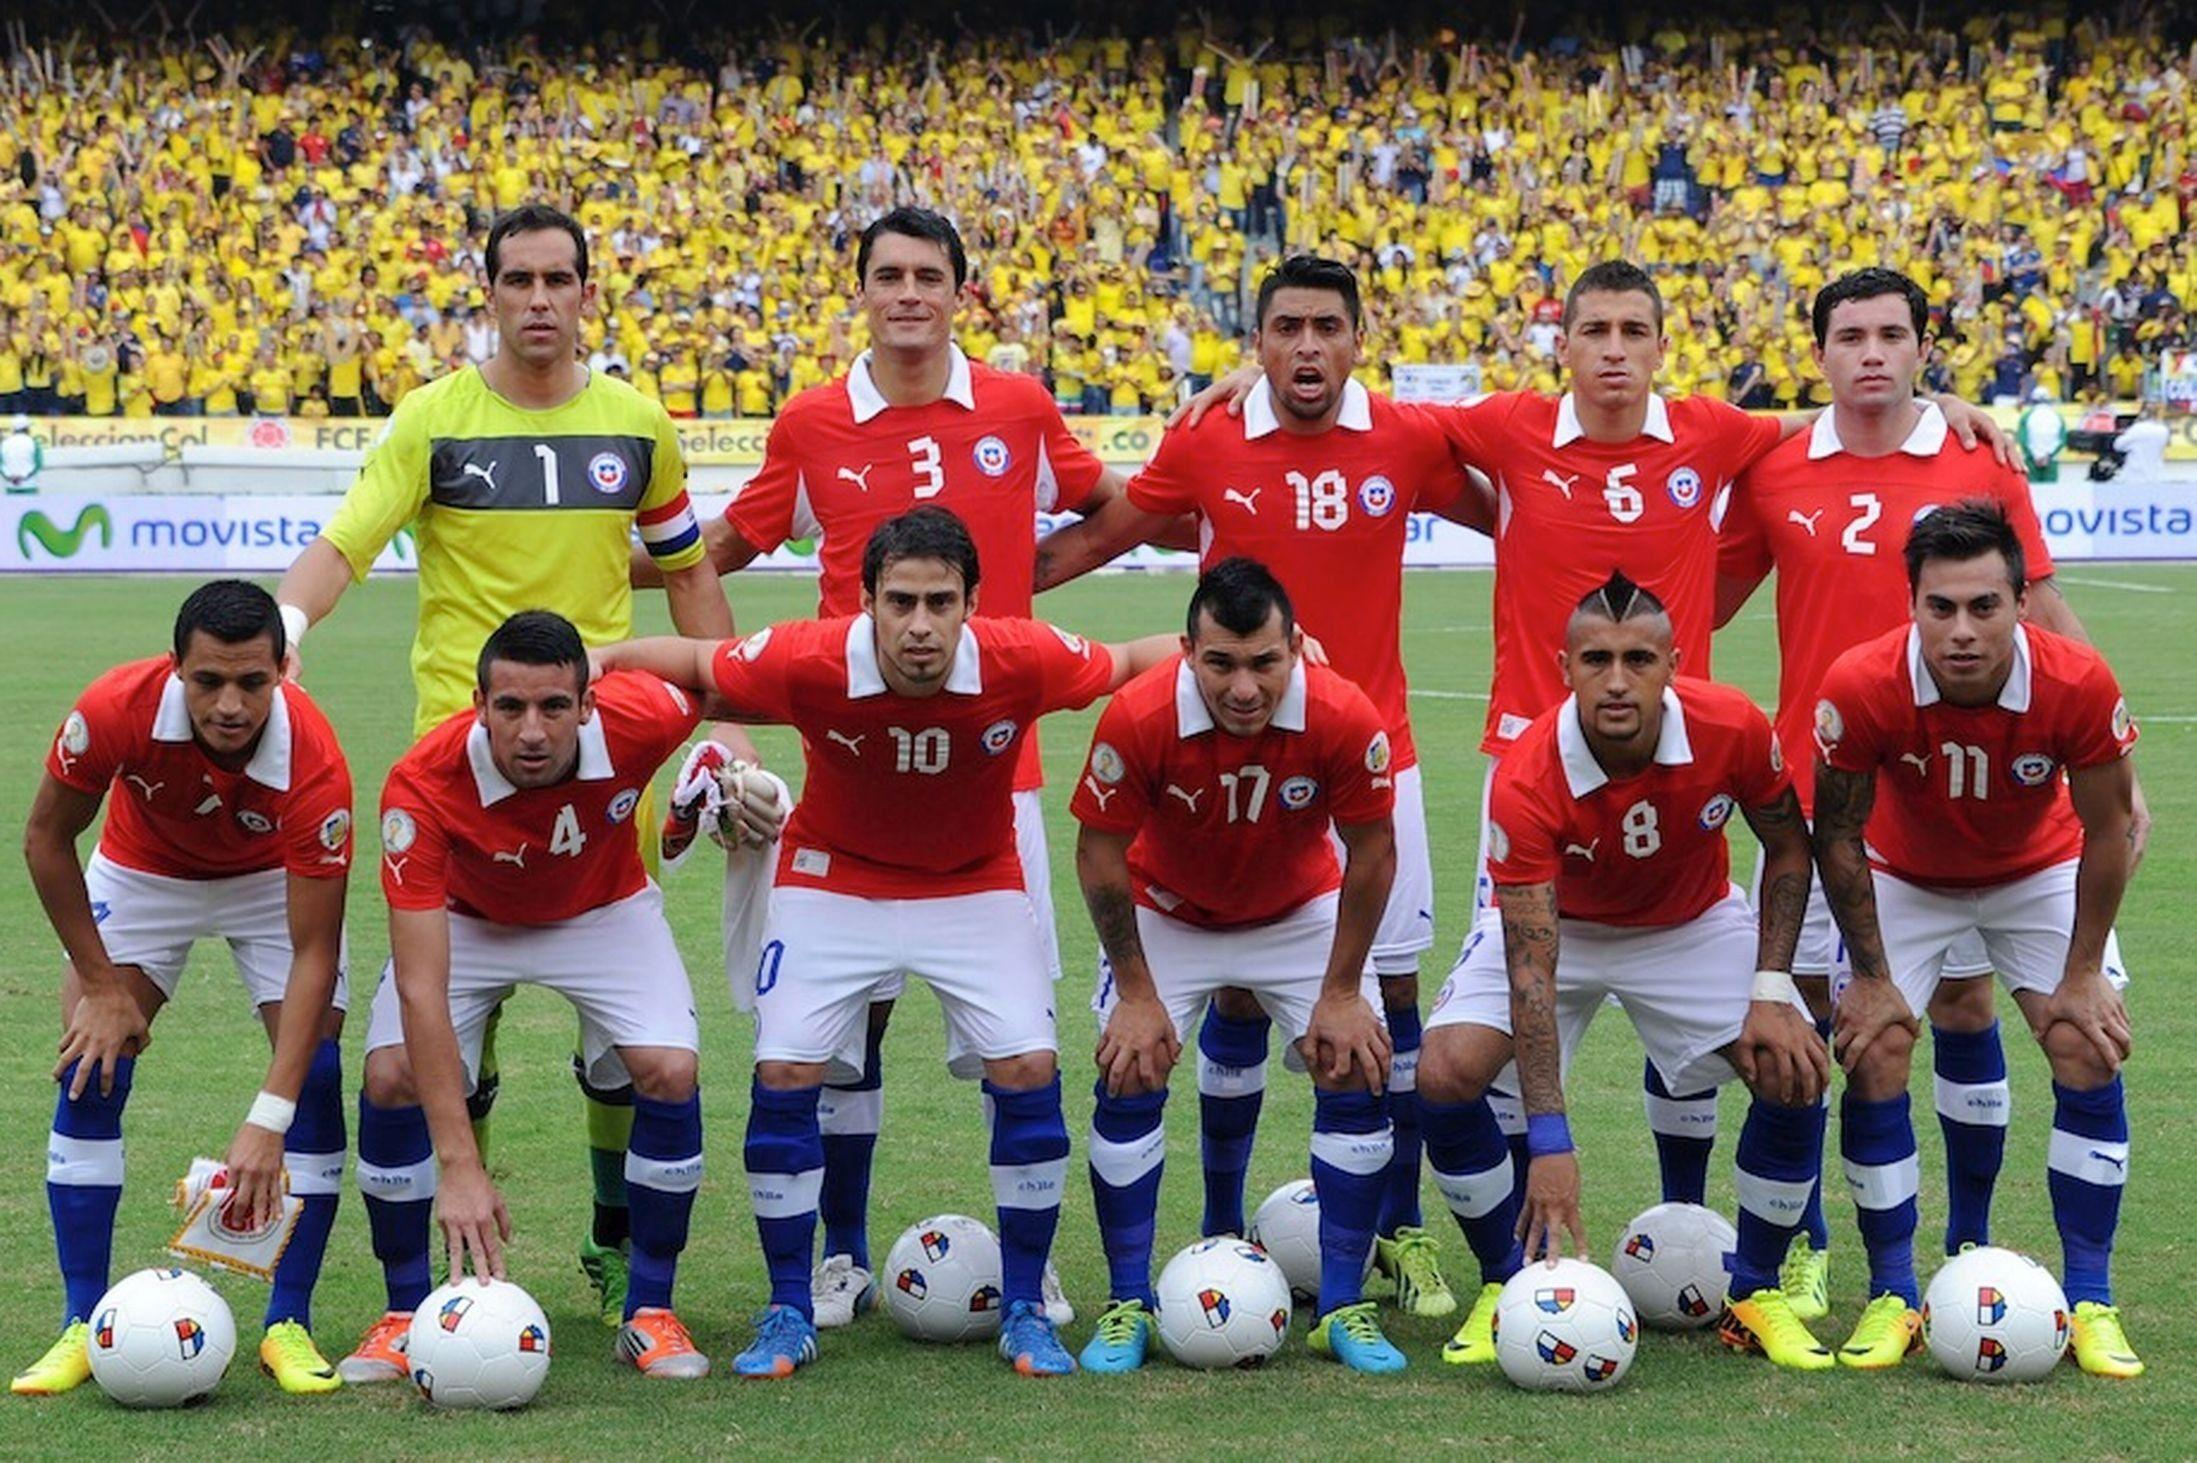 CHILE soccer (39) wallpaper | 2197x1463 | 365052 | WallpaperUP